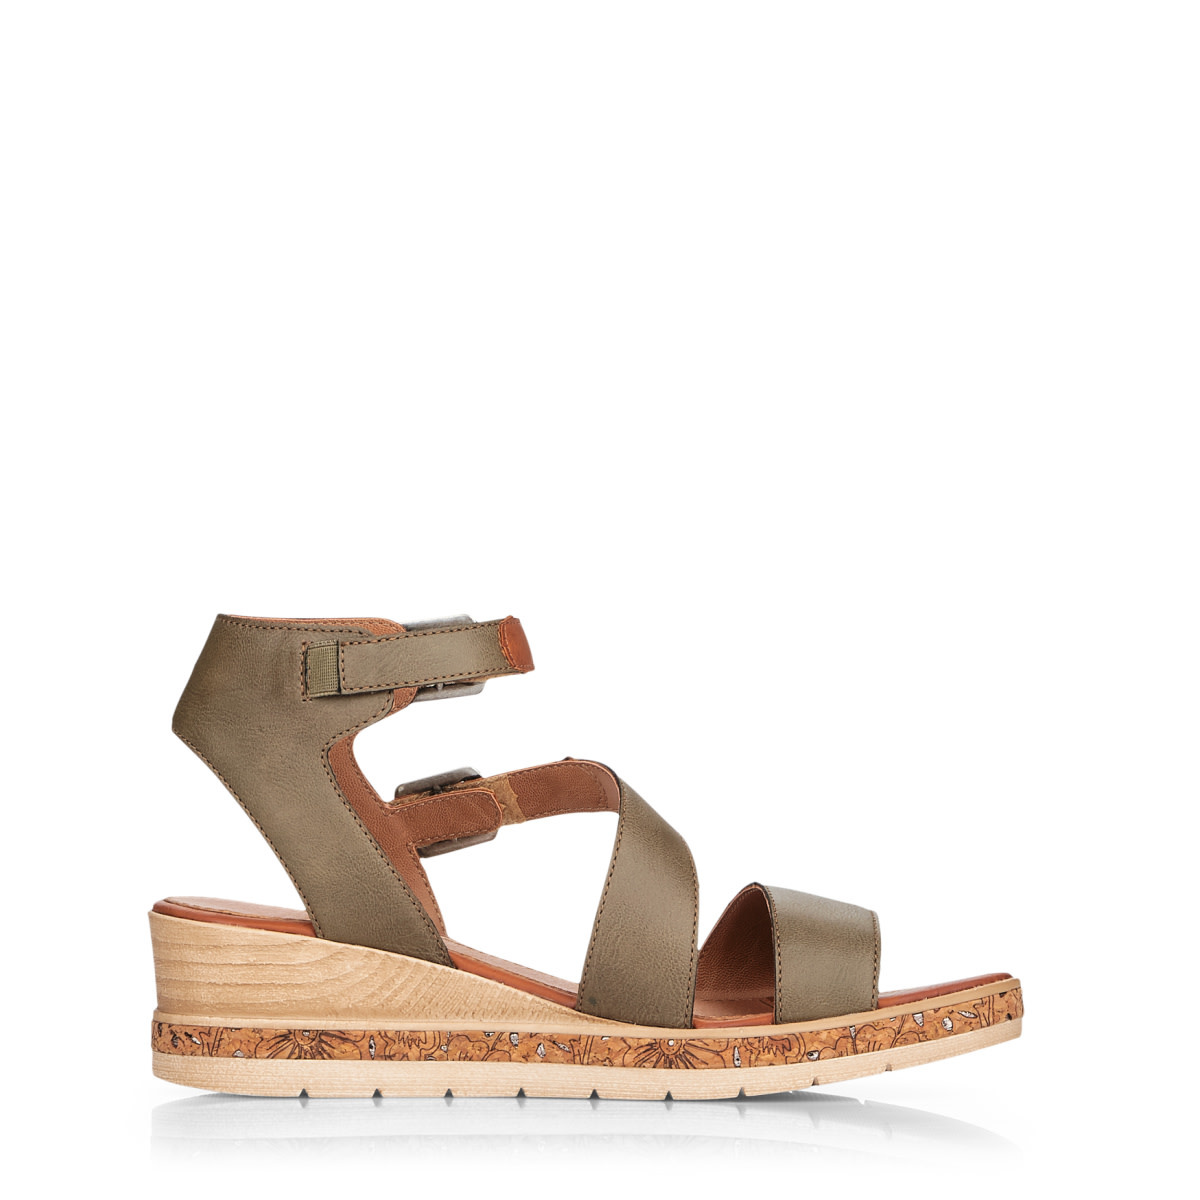 Remonte Remonte 3052-54 Sandal Army